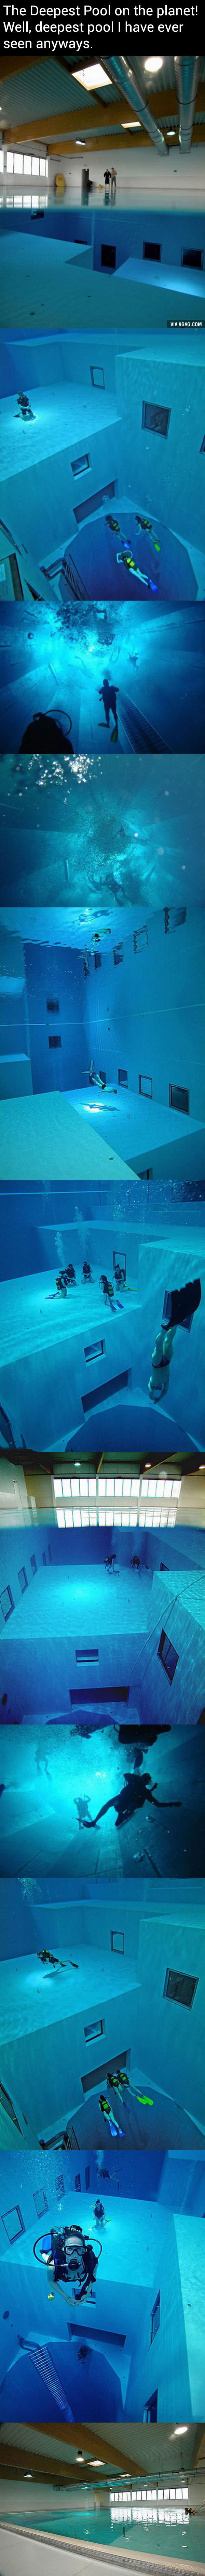 this is the deepest pool on the planet, scuba diving